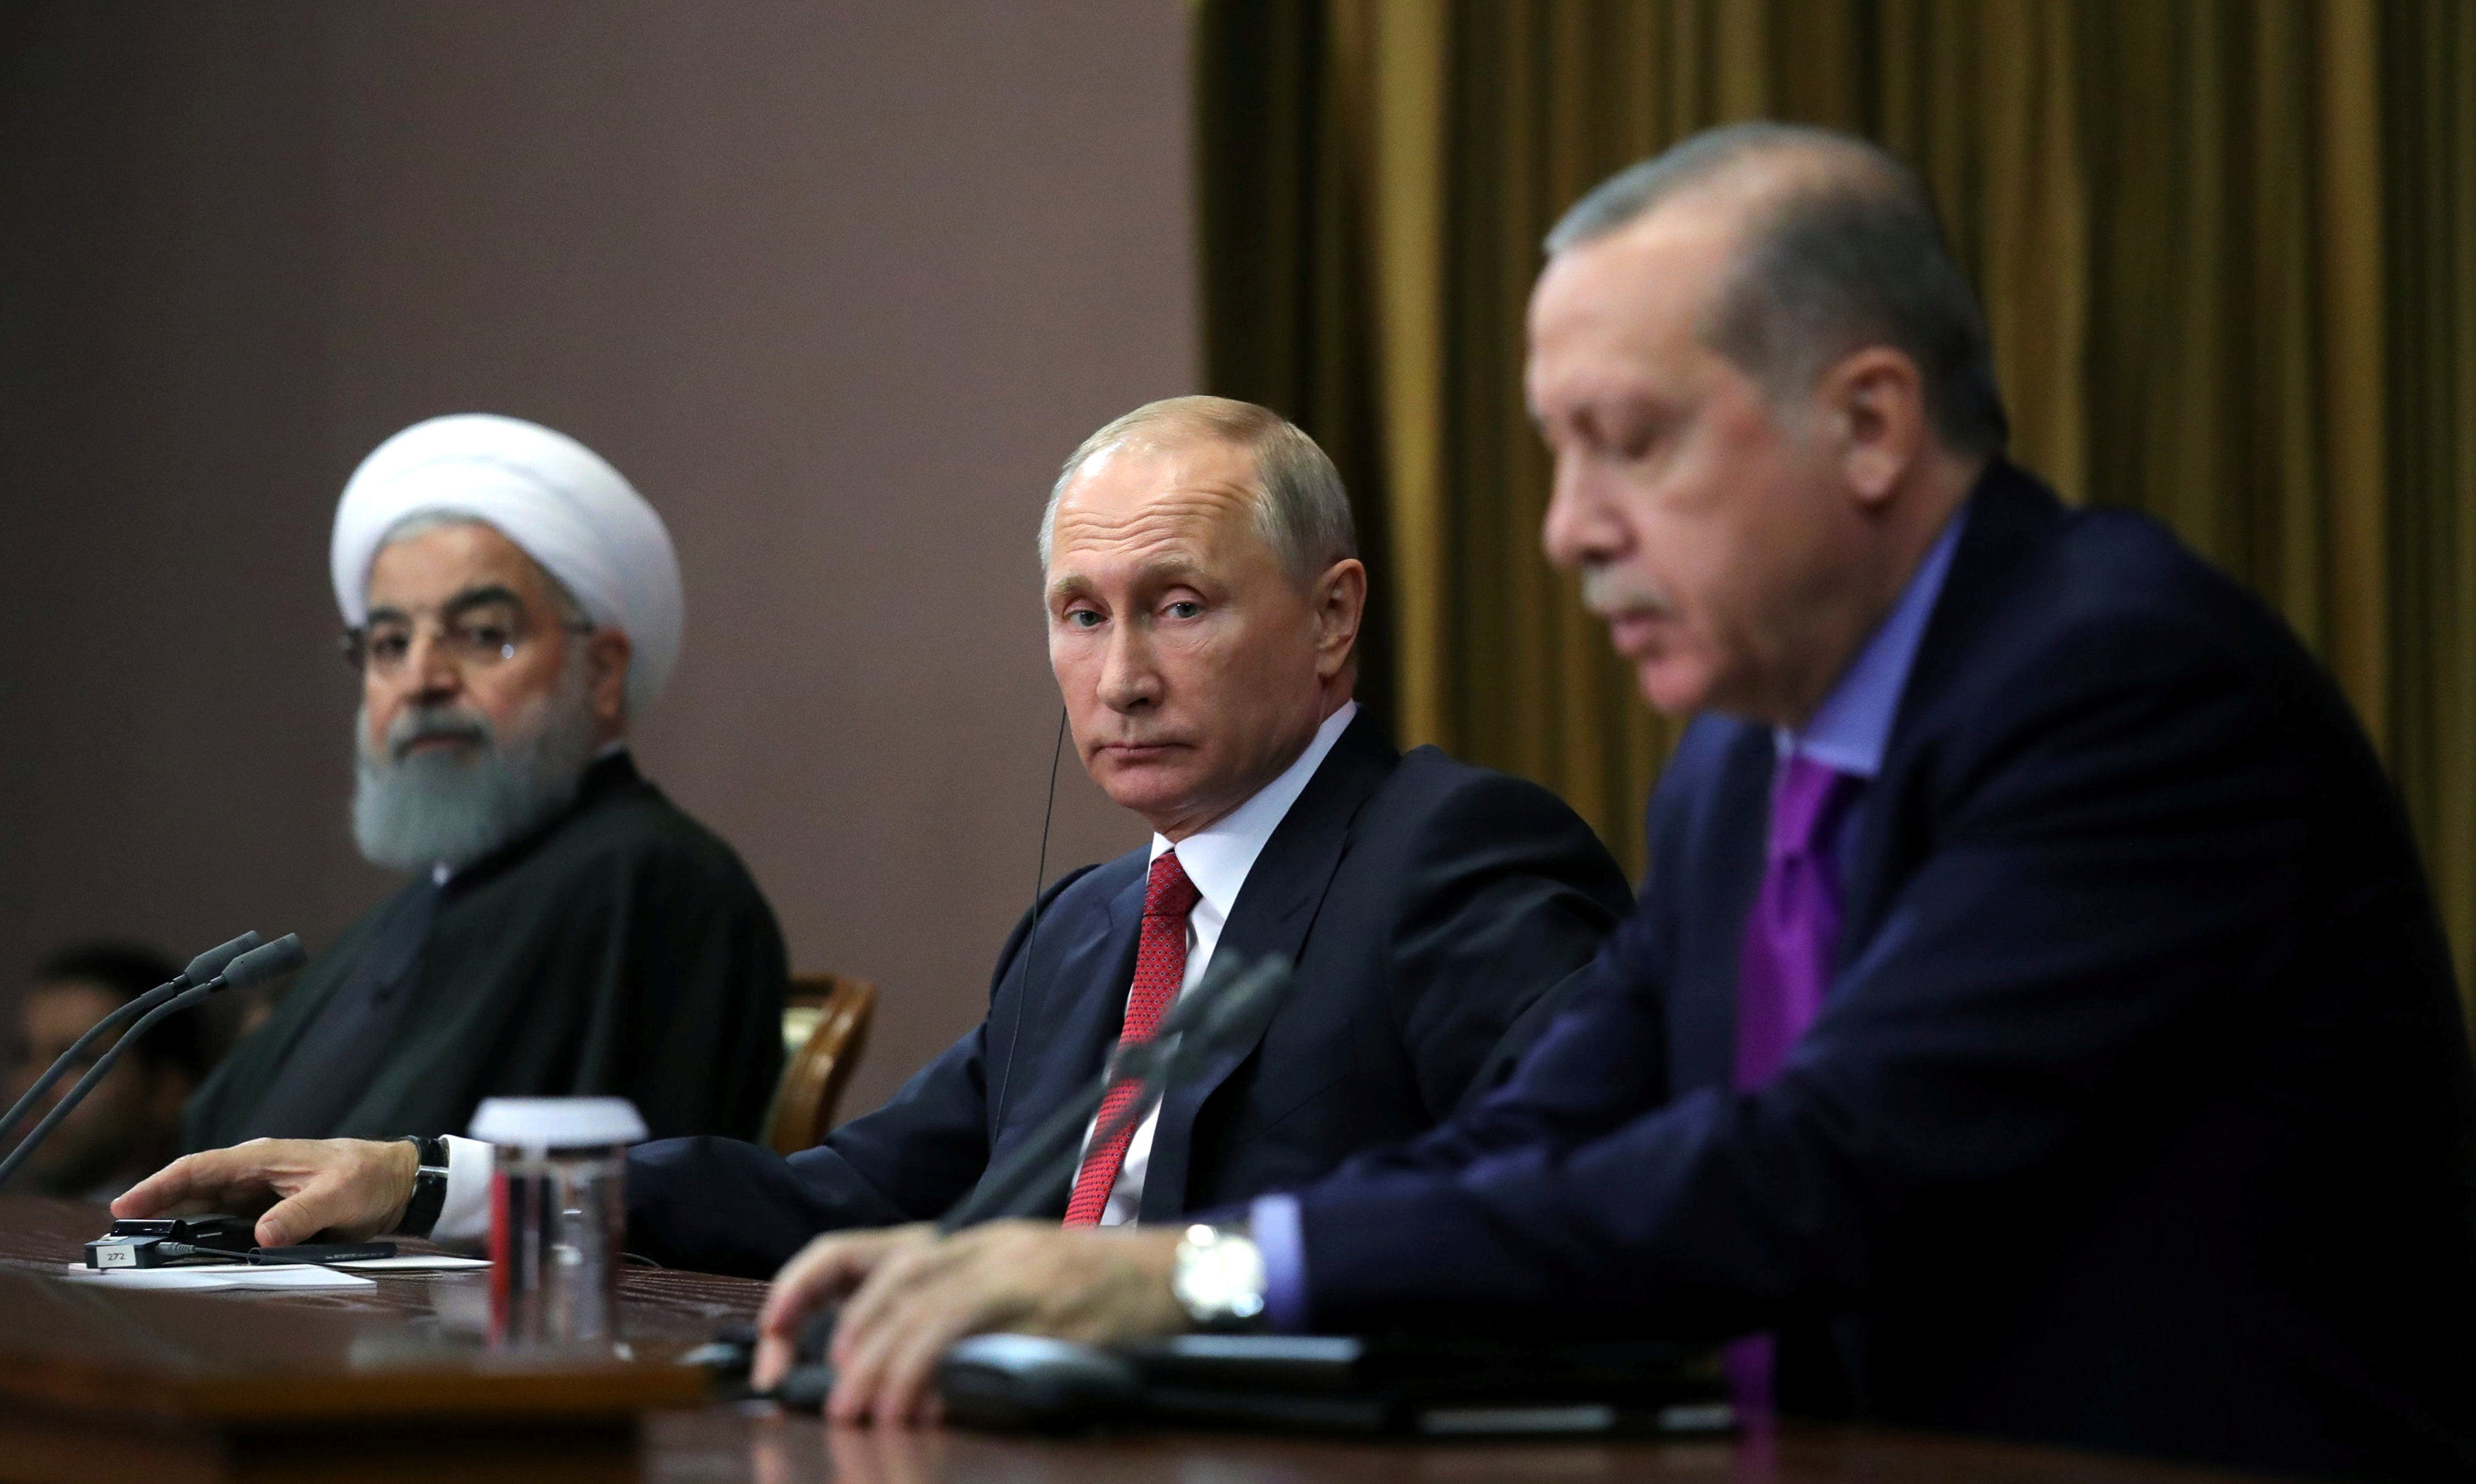 Iran, Turkey, Russia discuss Syria as violence rages unabated